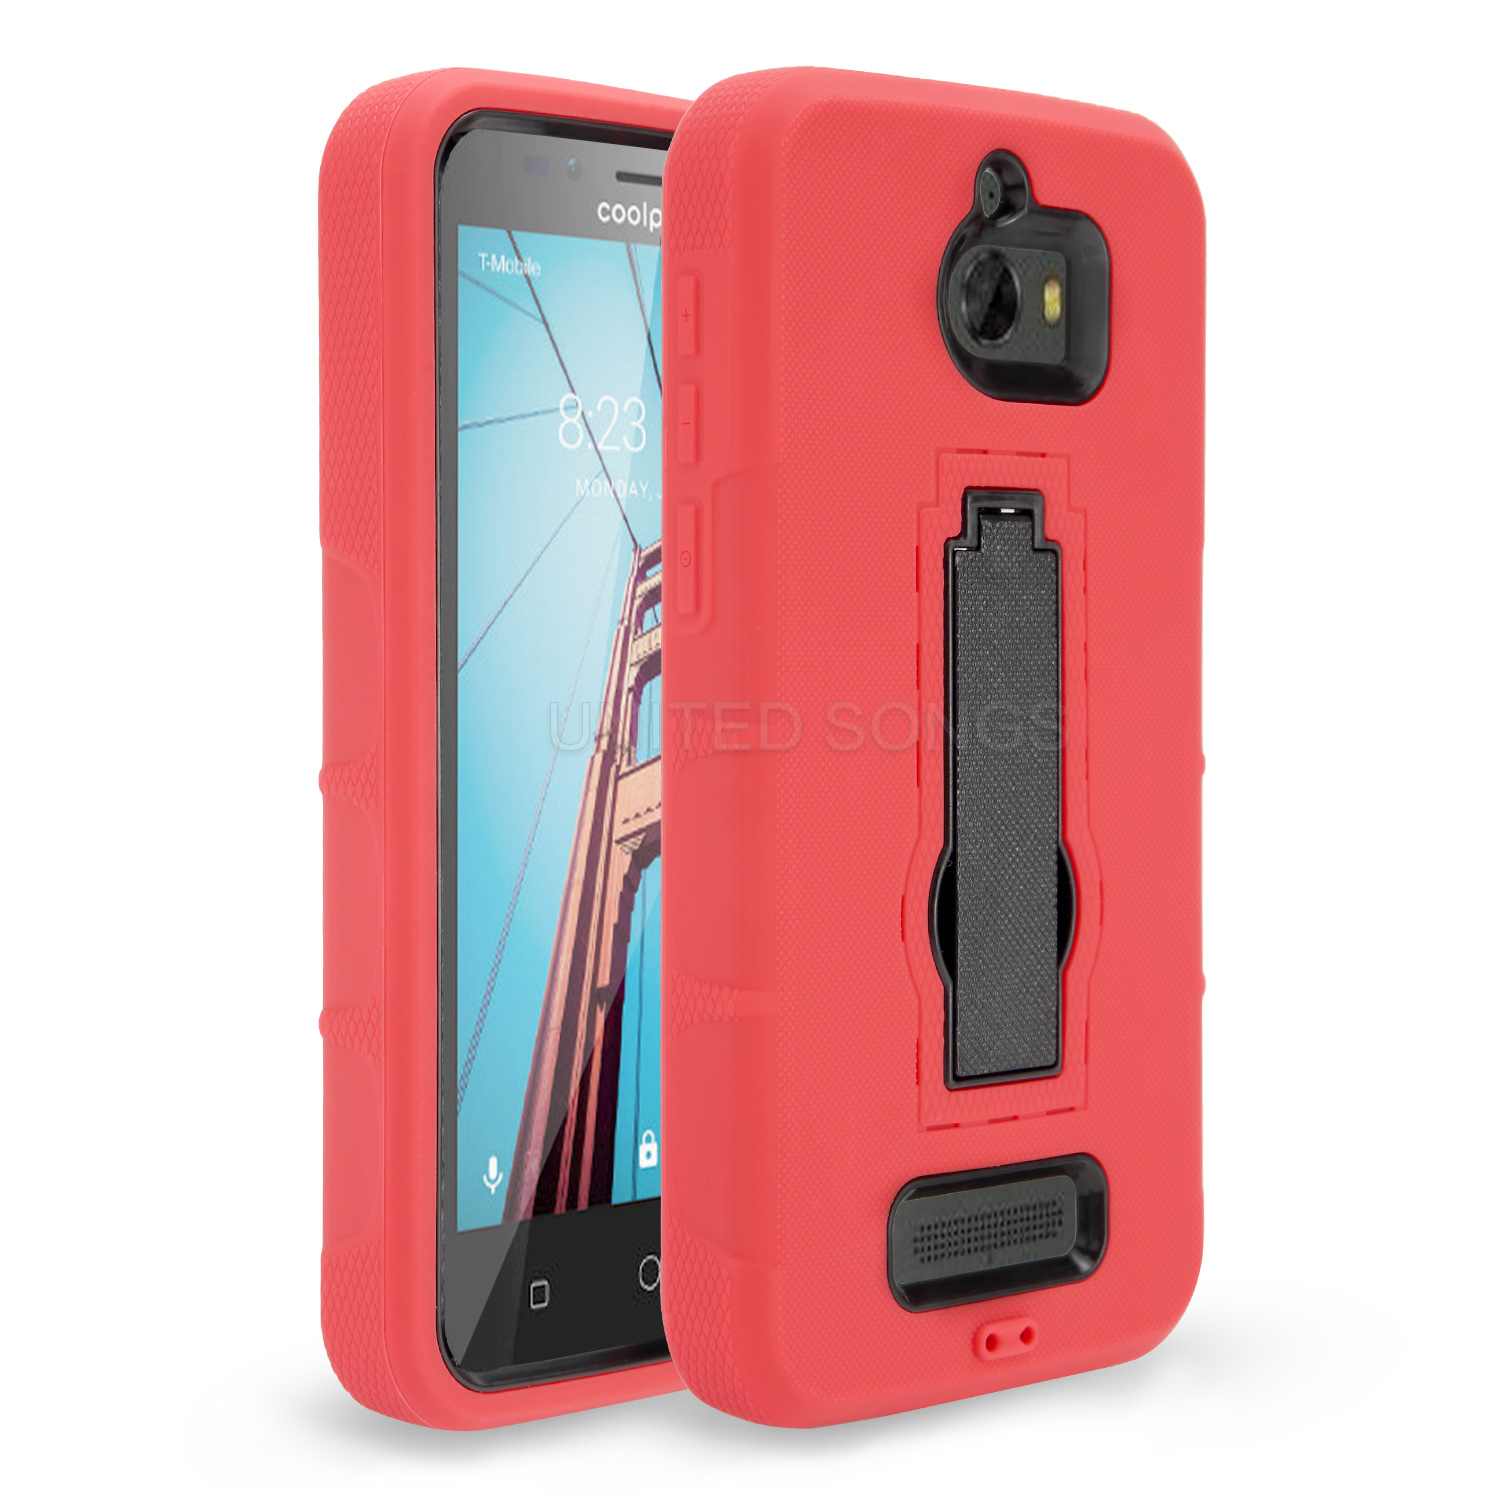 new concept 52c4b ff18a Coolpad Defiant 3632A Heavy Duty Case With Kickstand Red/Black